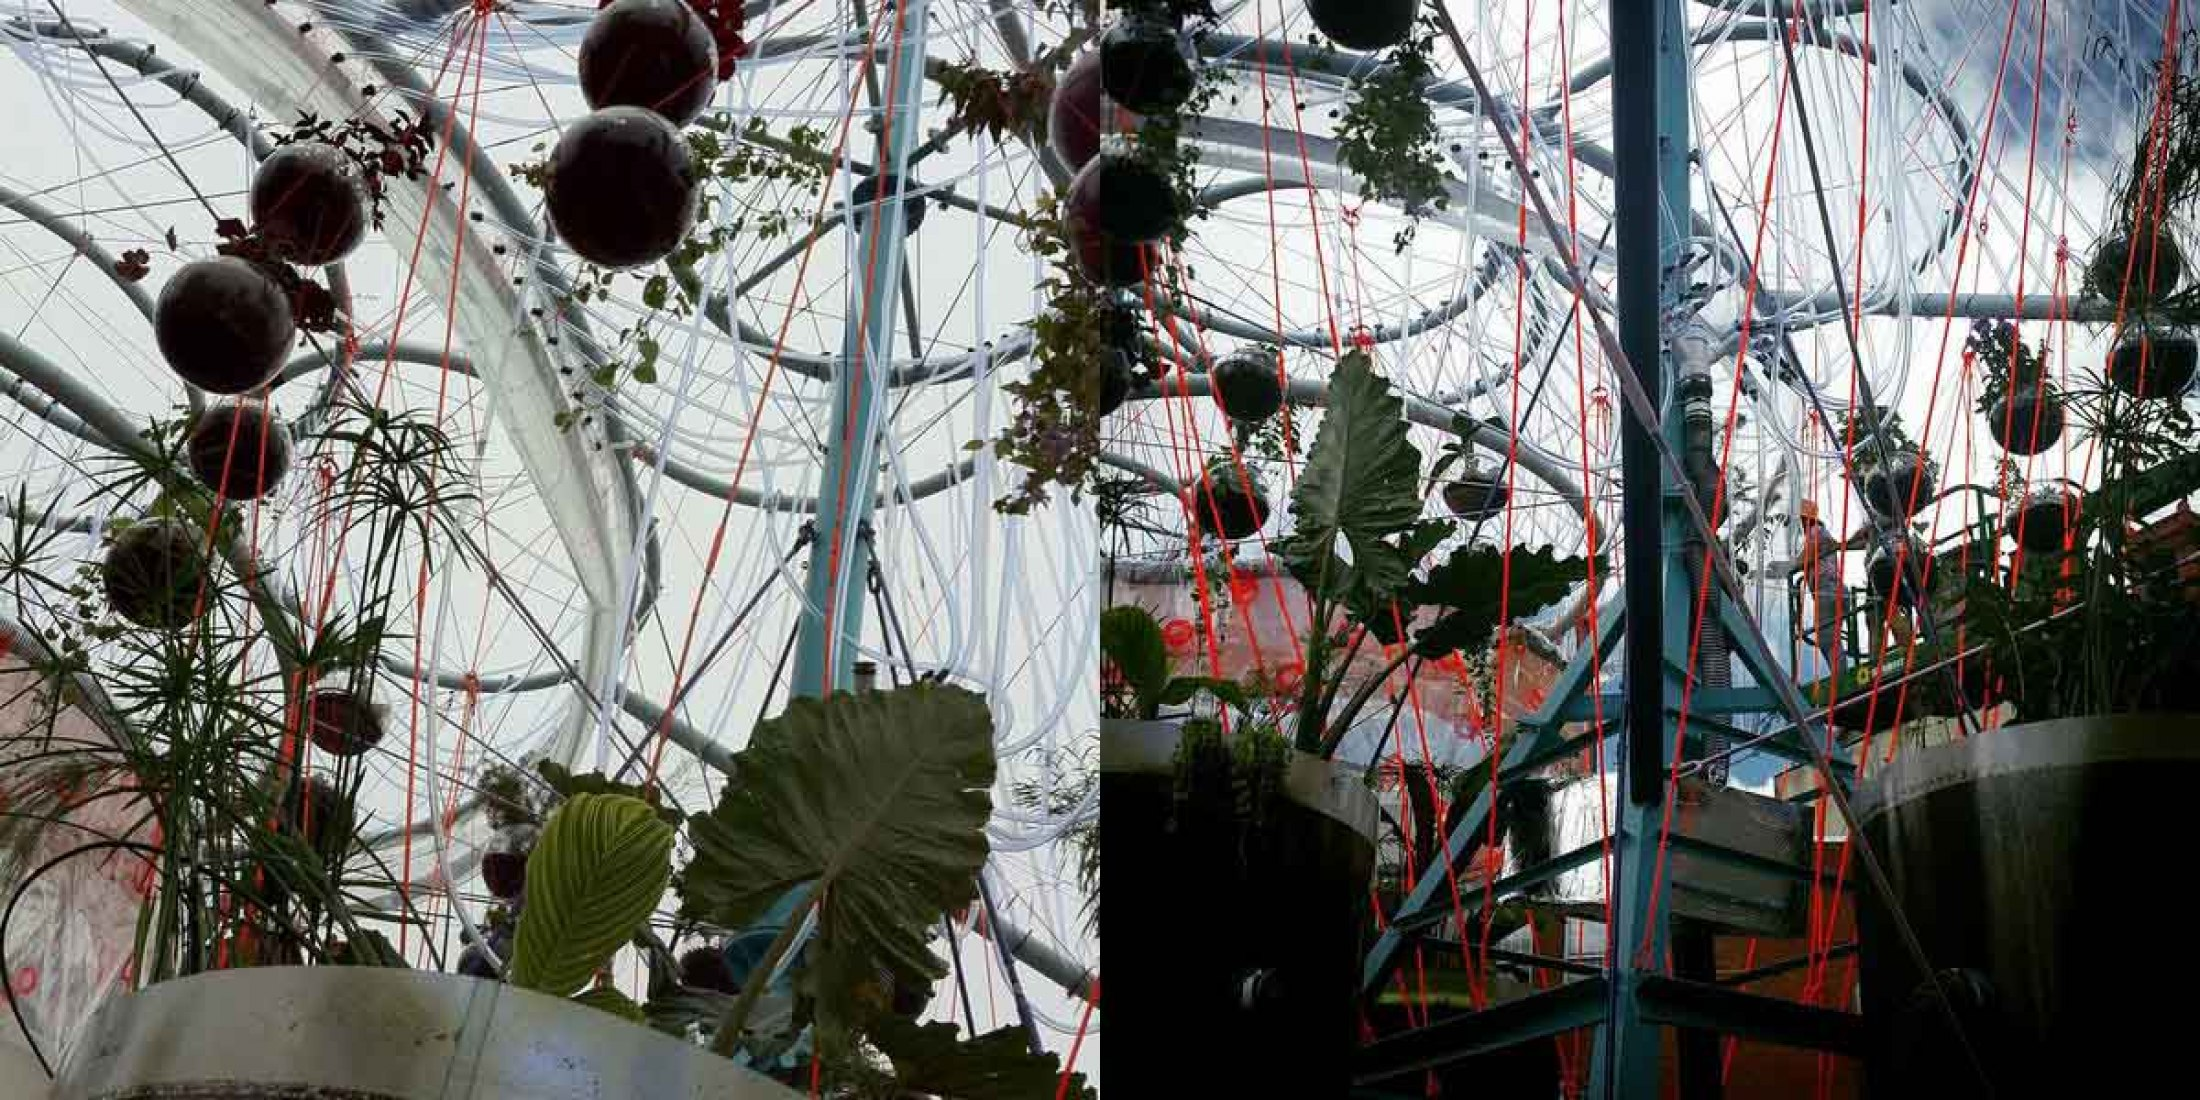 Details. Cosmo 2015 MoMA PS1by Andrés Jaque.